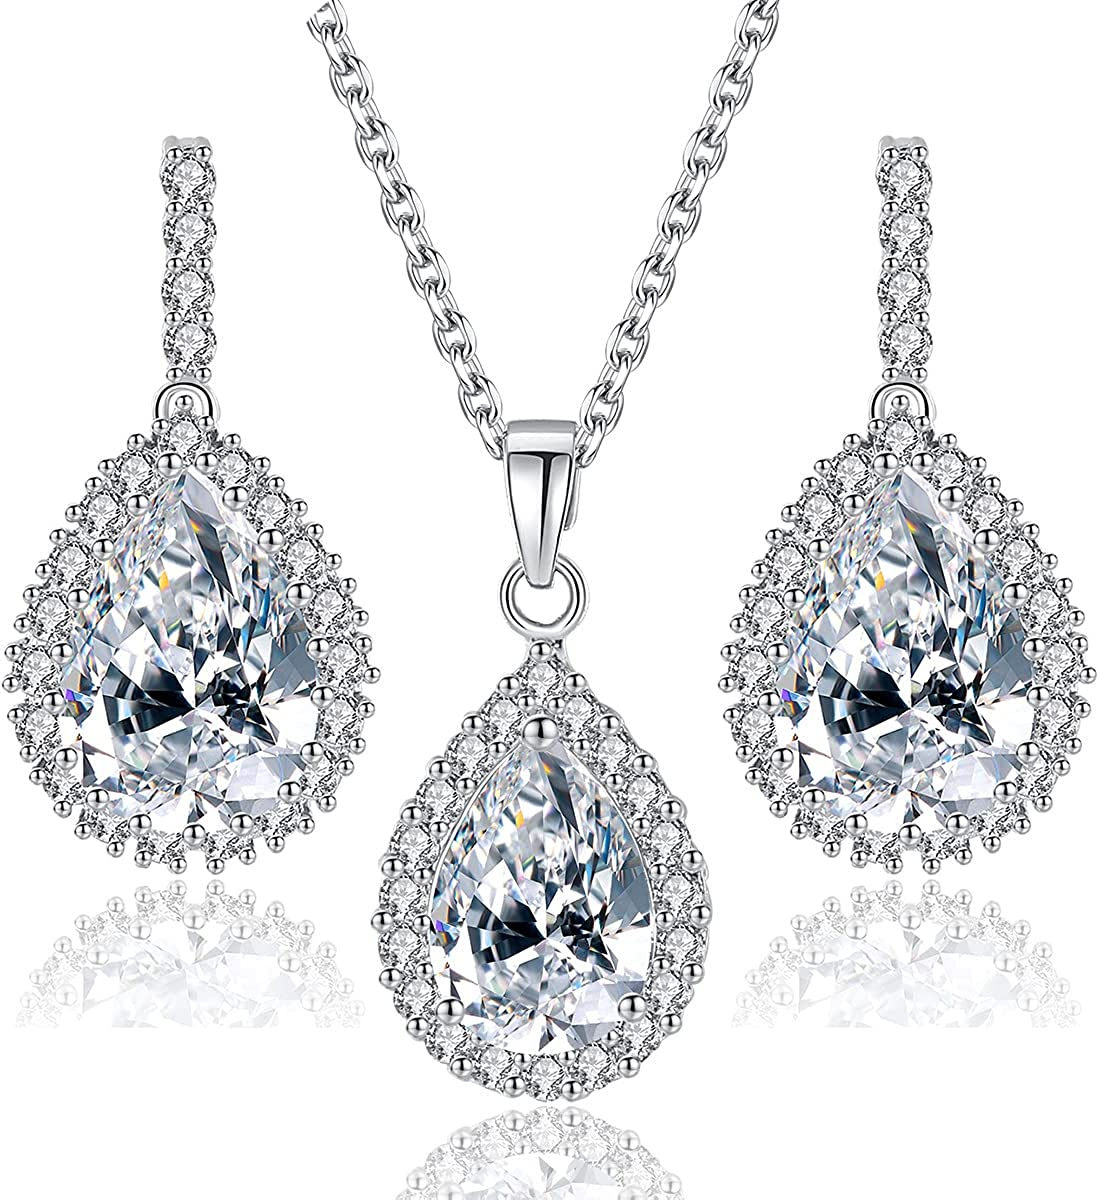 MissDaisy-Jewelry Set for Women, Necklace Dangle Stud Earrings White Gold Plated With Cubic Zirconia Wedding Party Jewelry for Bridal